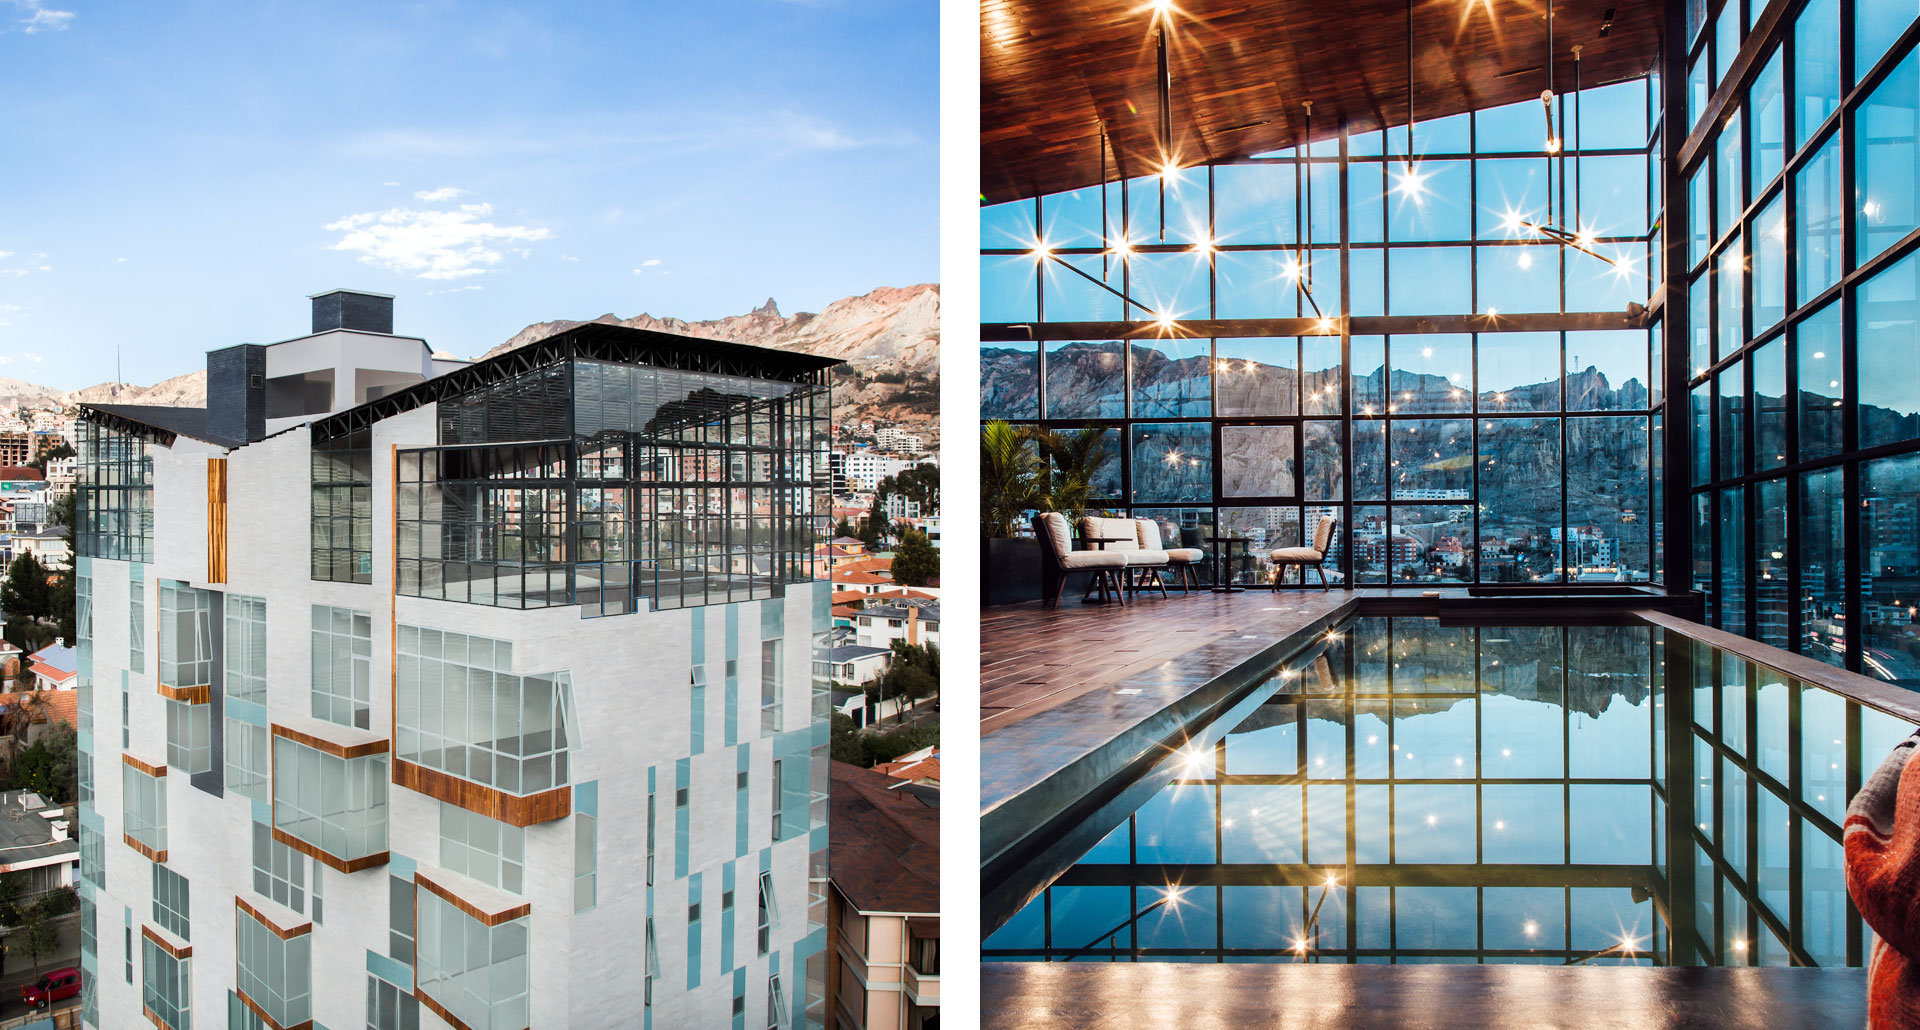 Atix Hotel - boutique hotel in La Paz